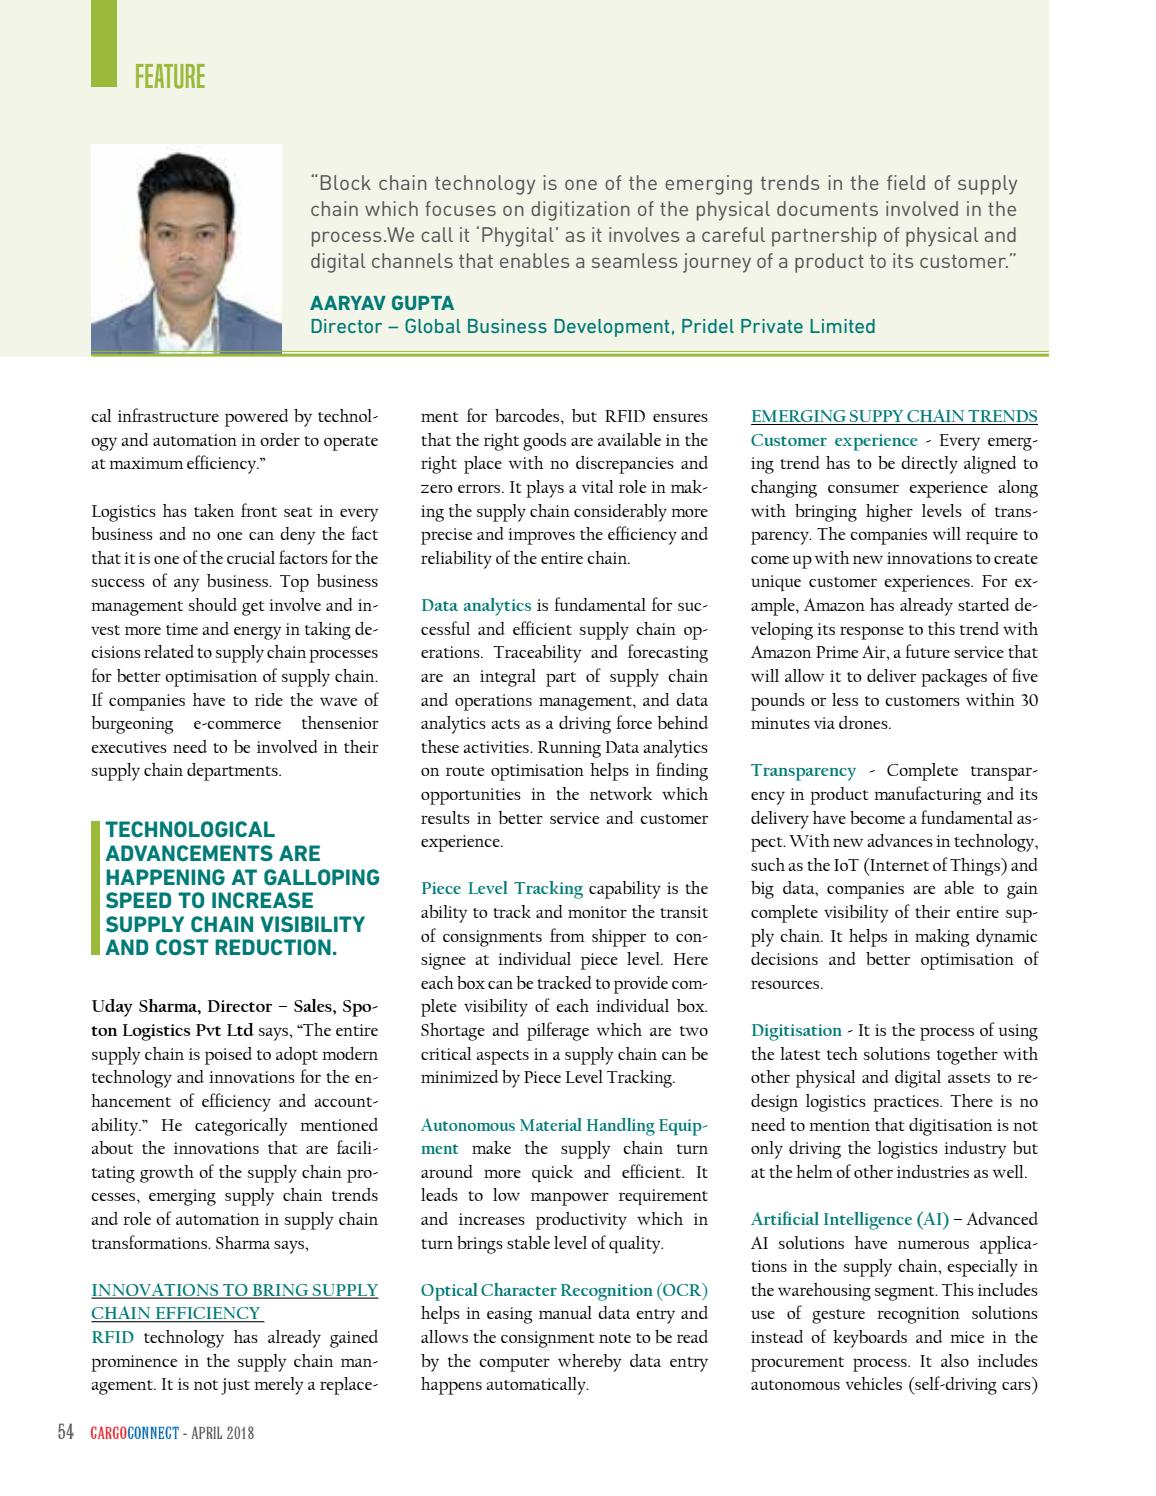 CARGOCONNECT April 2018 by Surecom Media - issuu